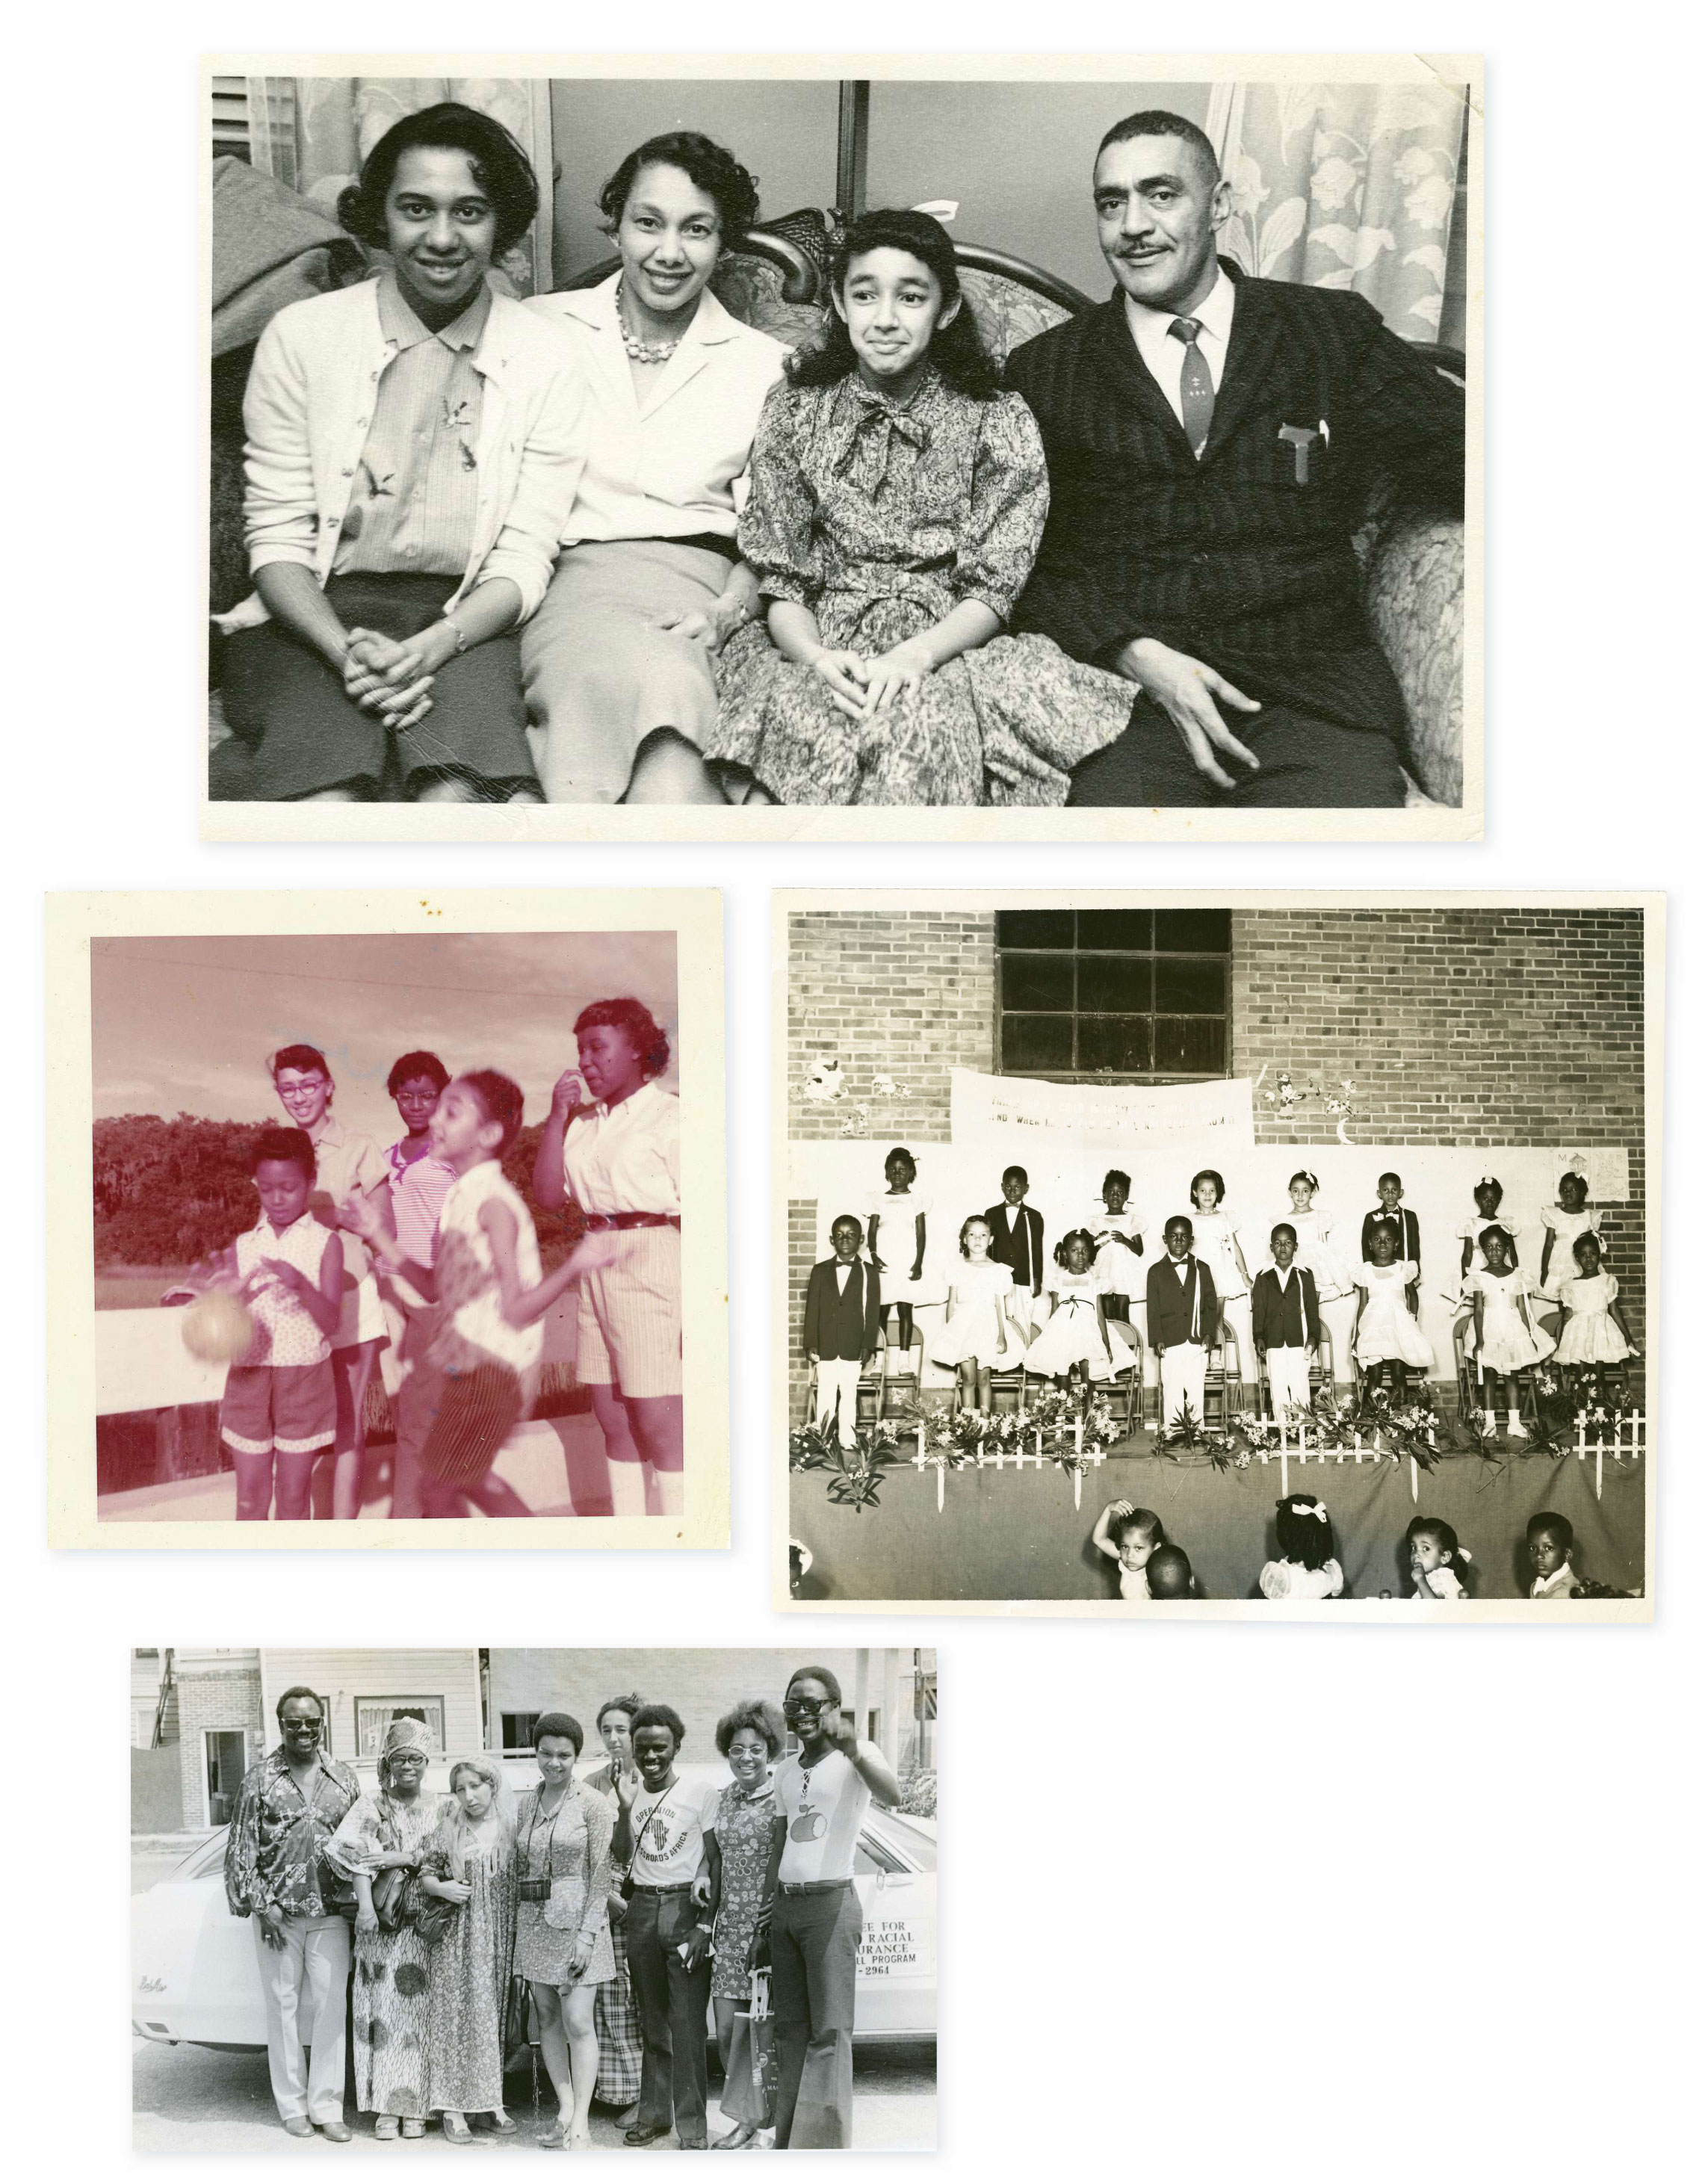 "Family Ties: The Browns lived amid a vibrant black middle-class neighborhood on the peninsula. ""There were black doctors, lawyers, business owners, well-to-do people and poor, too, but it was an intact community,"" says Millicent. (Clockwise from top) With her parents, MaeDe and J. Arthur, and sister Minerva, the original plaintiff in the school suit; at an A. B. Rhett School program in 1954; working with Operation Crossroads Africa in the 1970s (the program was sponsored by the State Department to expose Africans to Lowcountry culture); with older sister Joenelle (far left, back) circa 1957 at a black-owned resort in the Catskill Mountains frequented by the Brown family"